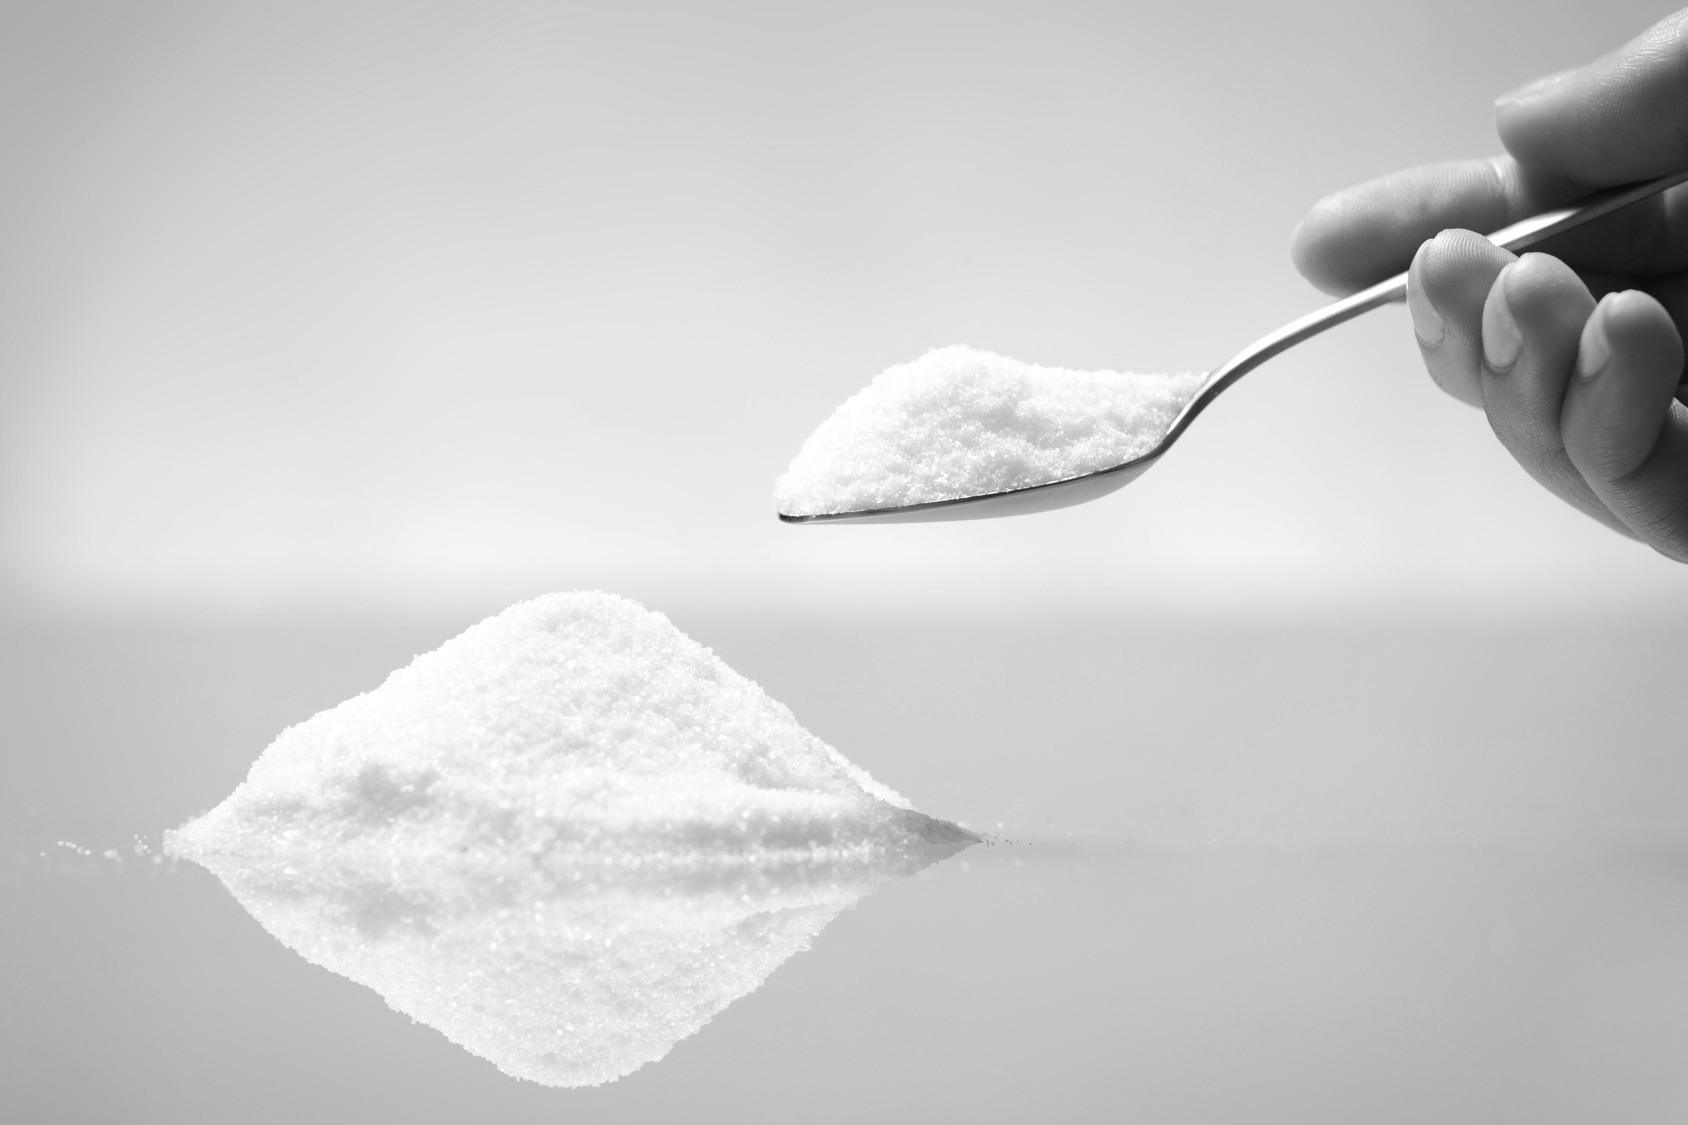 Prelon Dichtsystem GmbH Krefeld - A pile of salt and a hand holding a silver spoon.